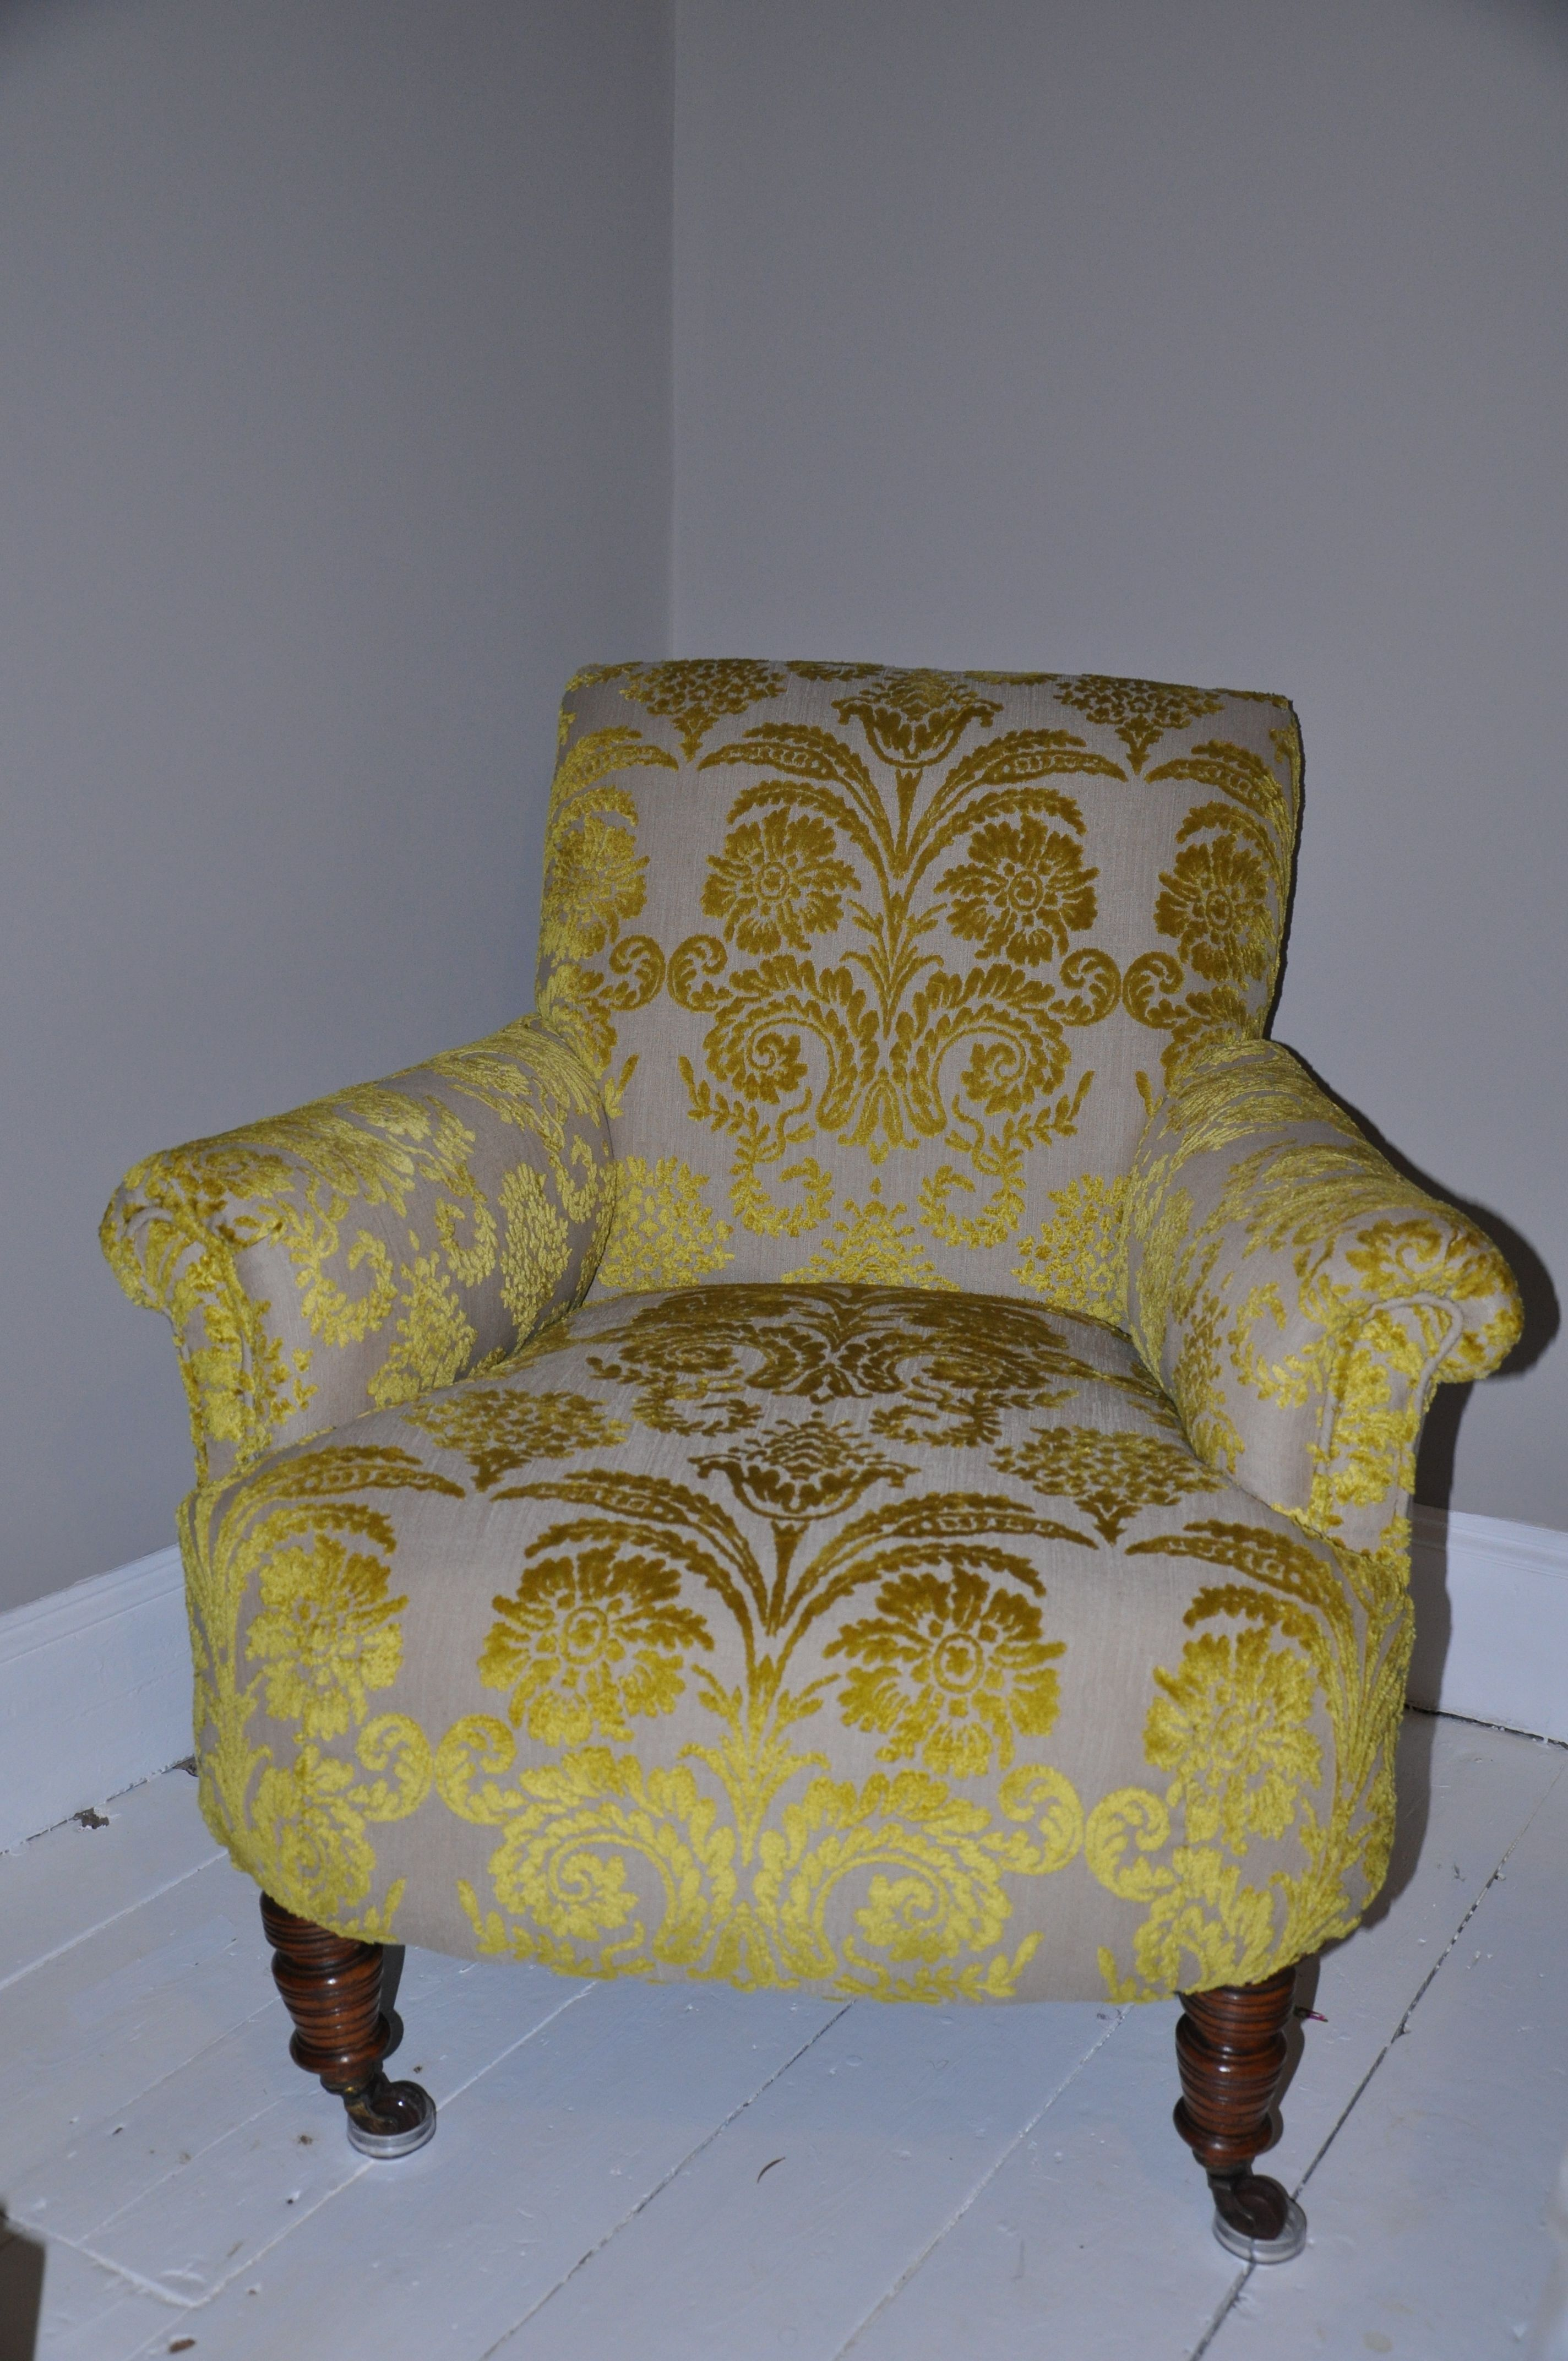 Edwardian chair traditionally reupholstered and covered in